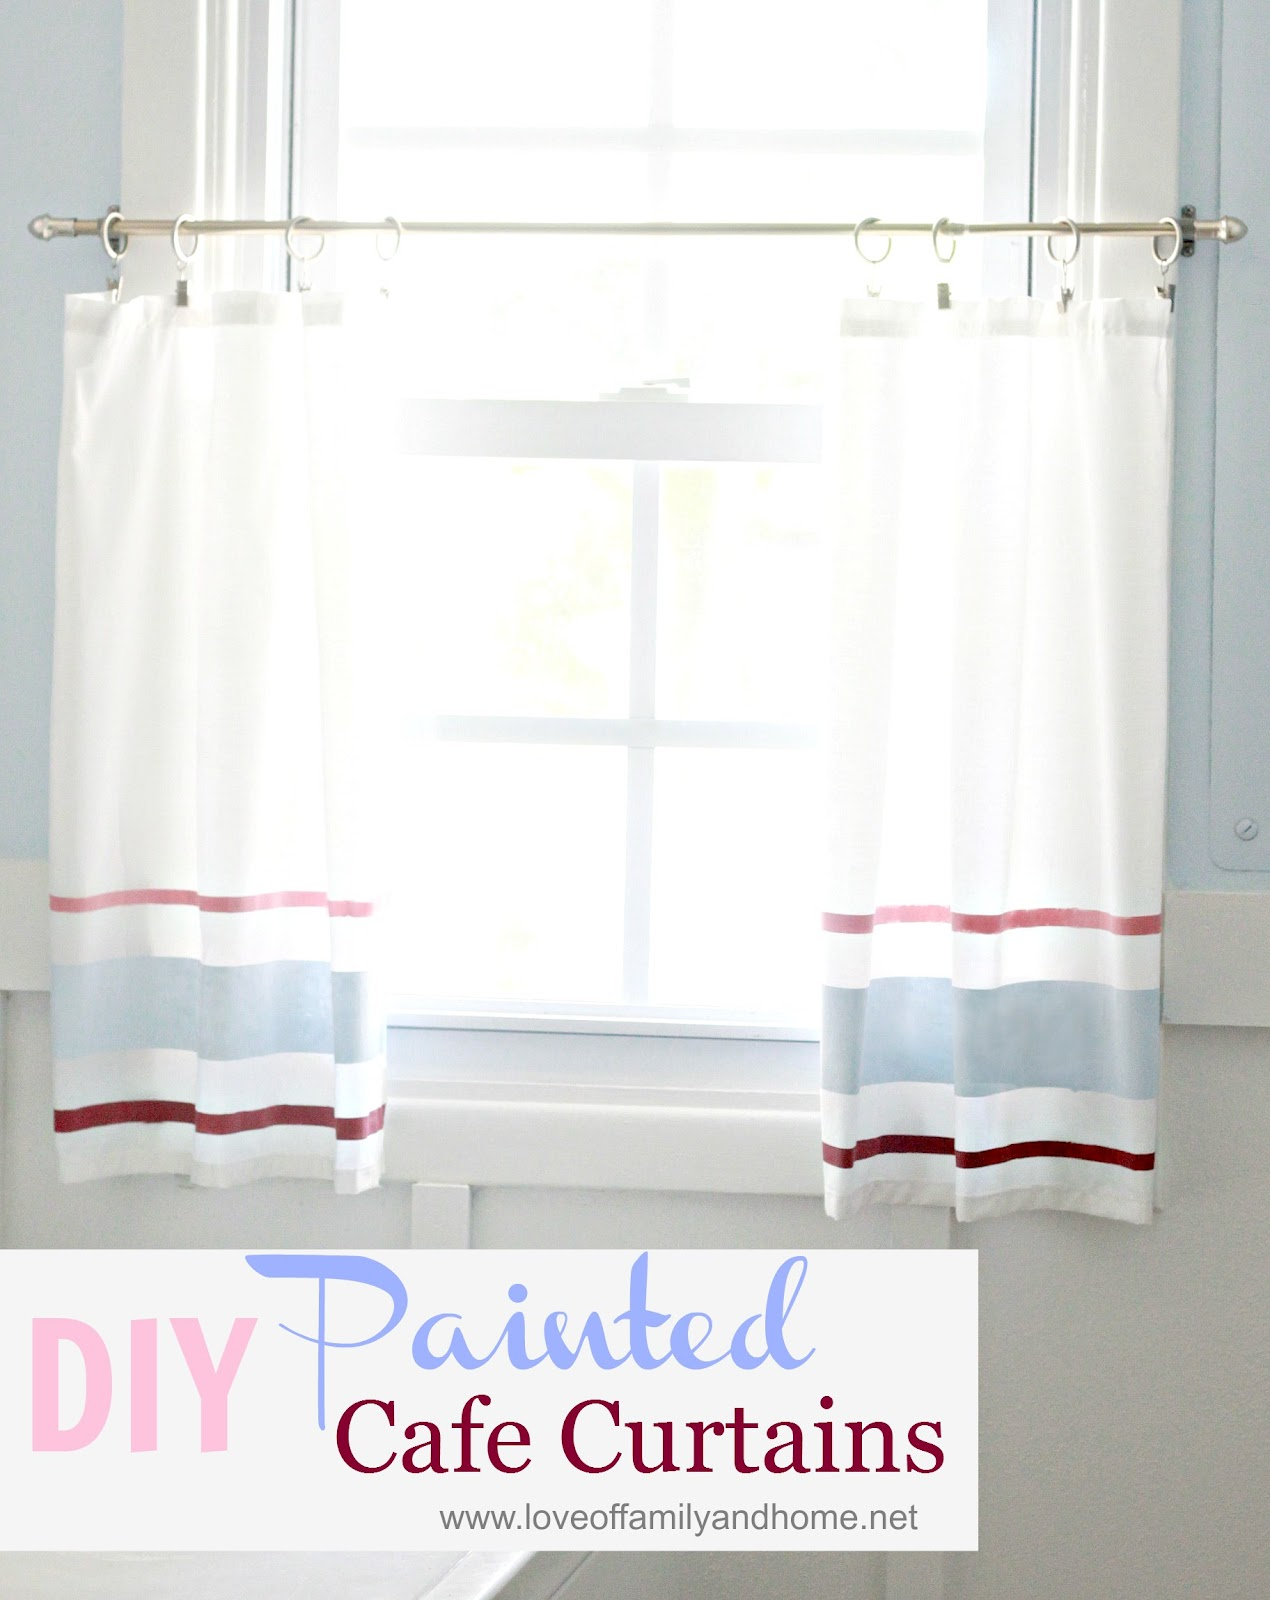 DIY Painted Cafe Curtain {Tutorial} - Love of Family & Home